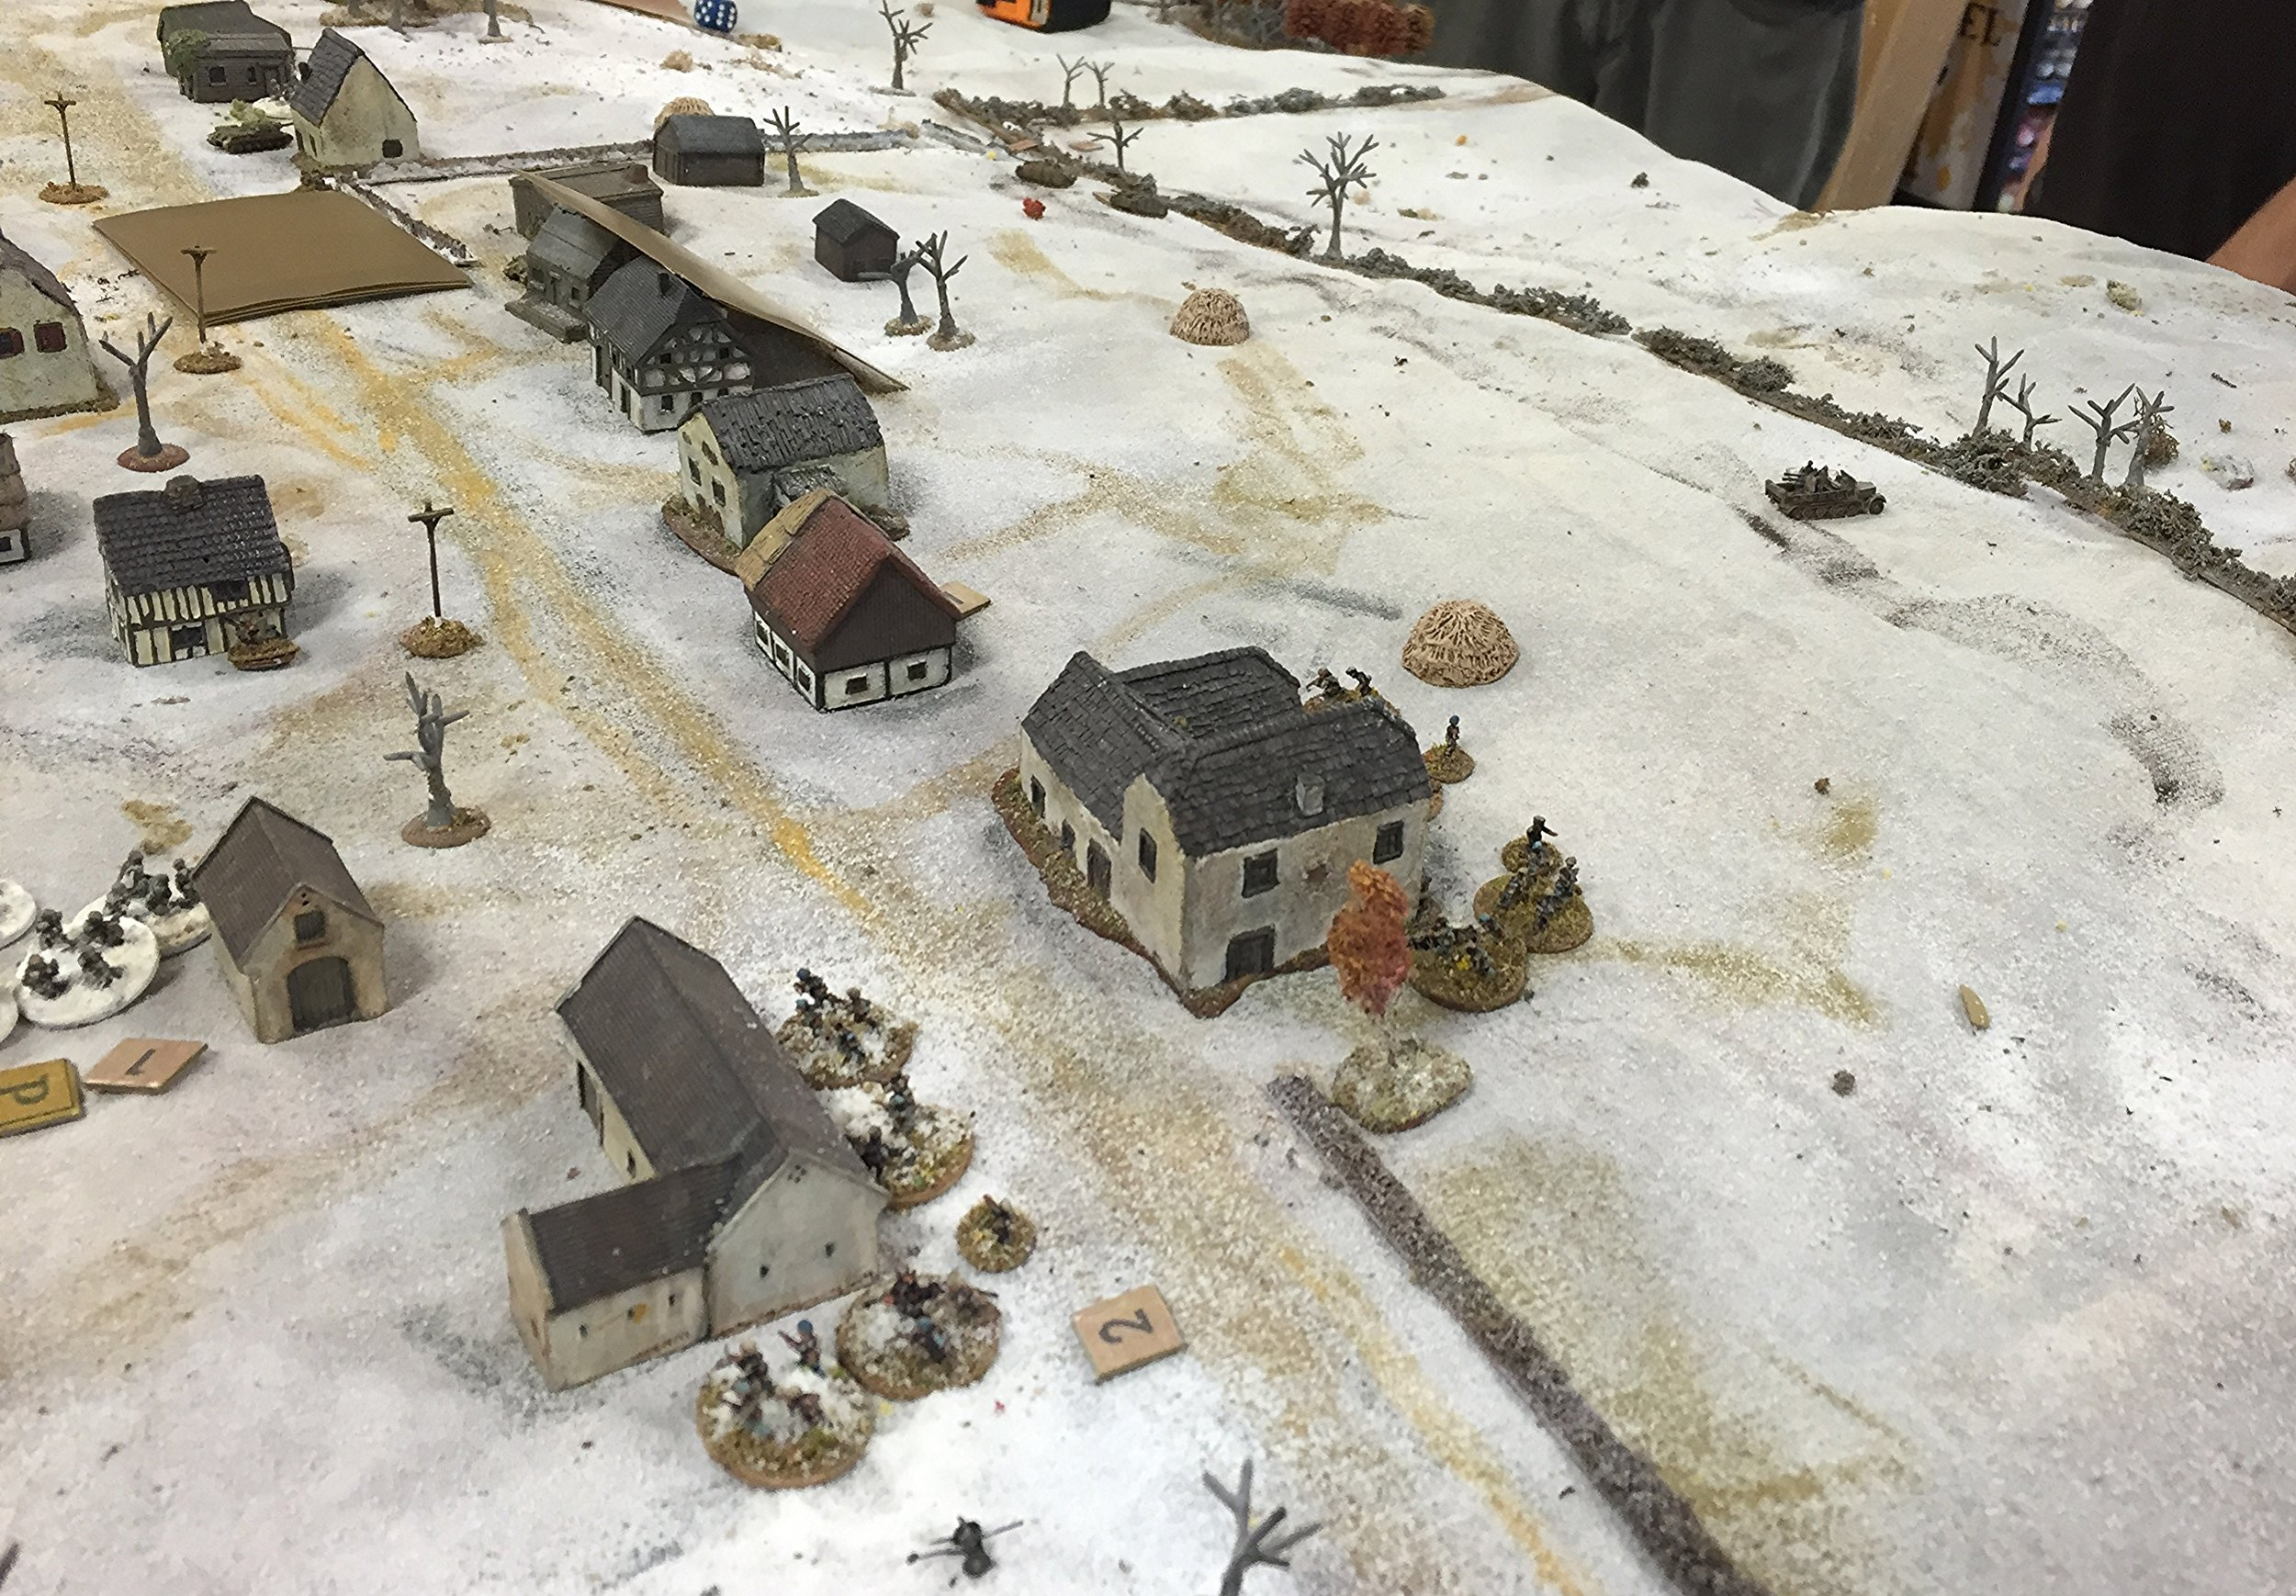 More Action on the Flank